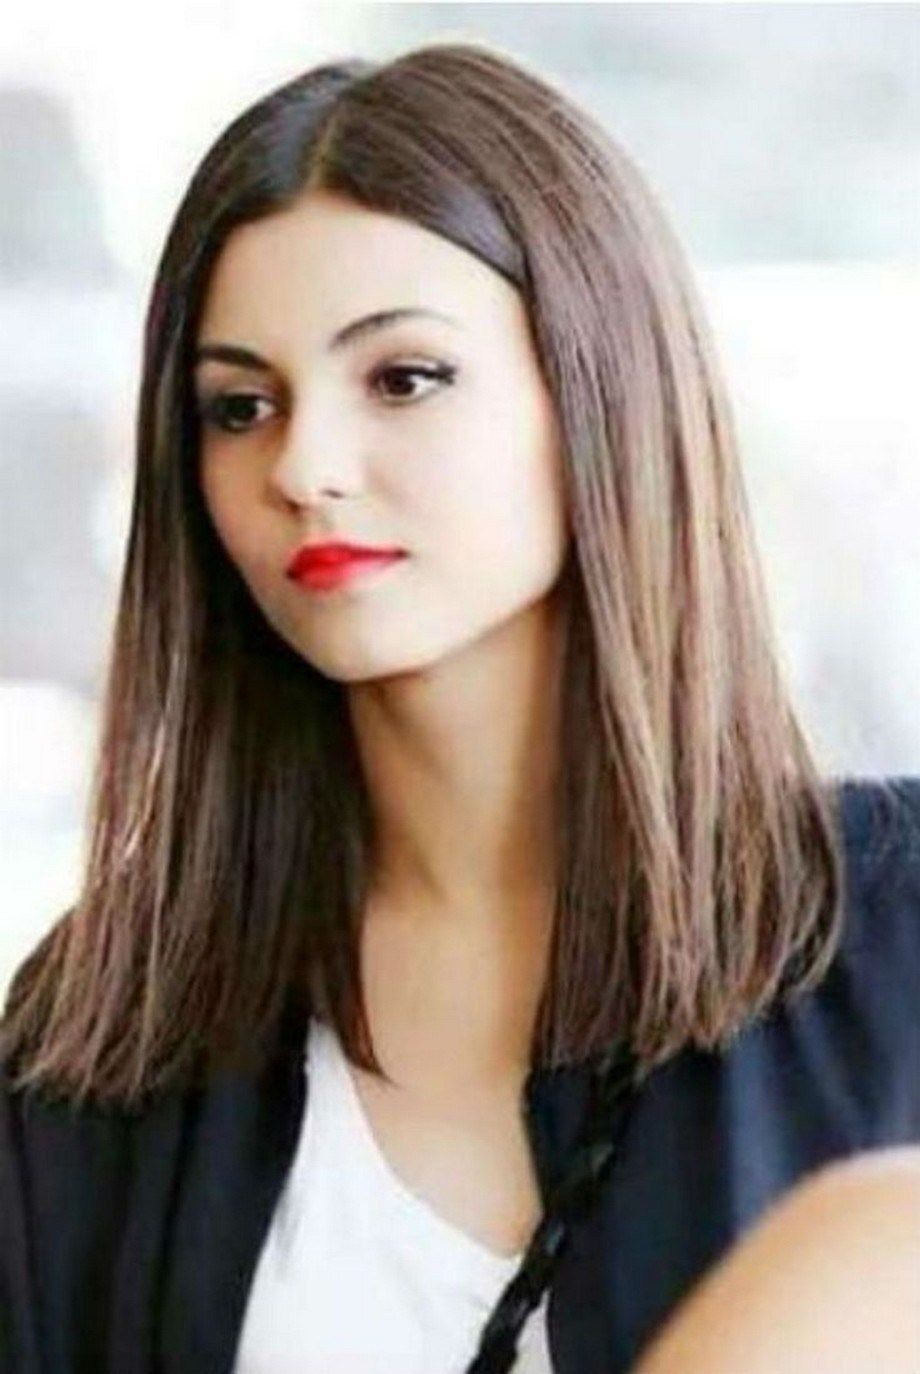 35 Straight Medium Length Hairstyles for Women You will Love straightmediumlengthhairstyles straighthairstyles mediumlengthhairstyles > sassykatchy com is part of Victoria justice hair -